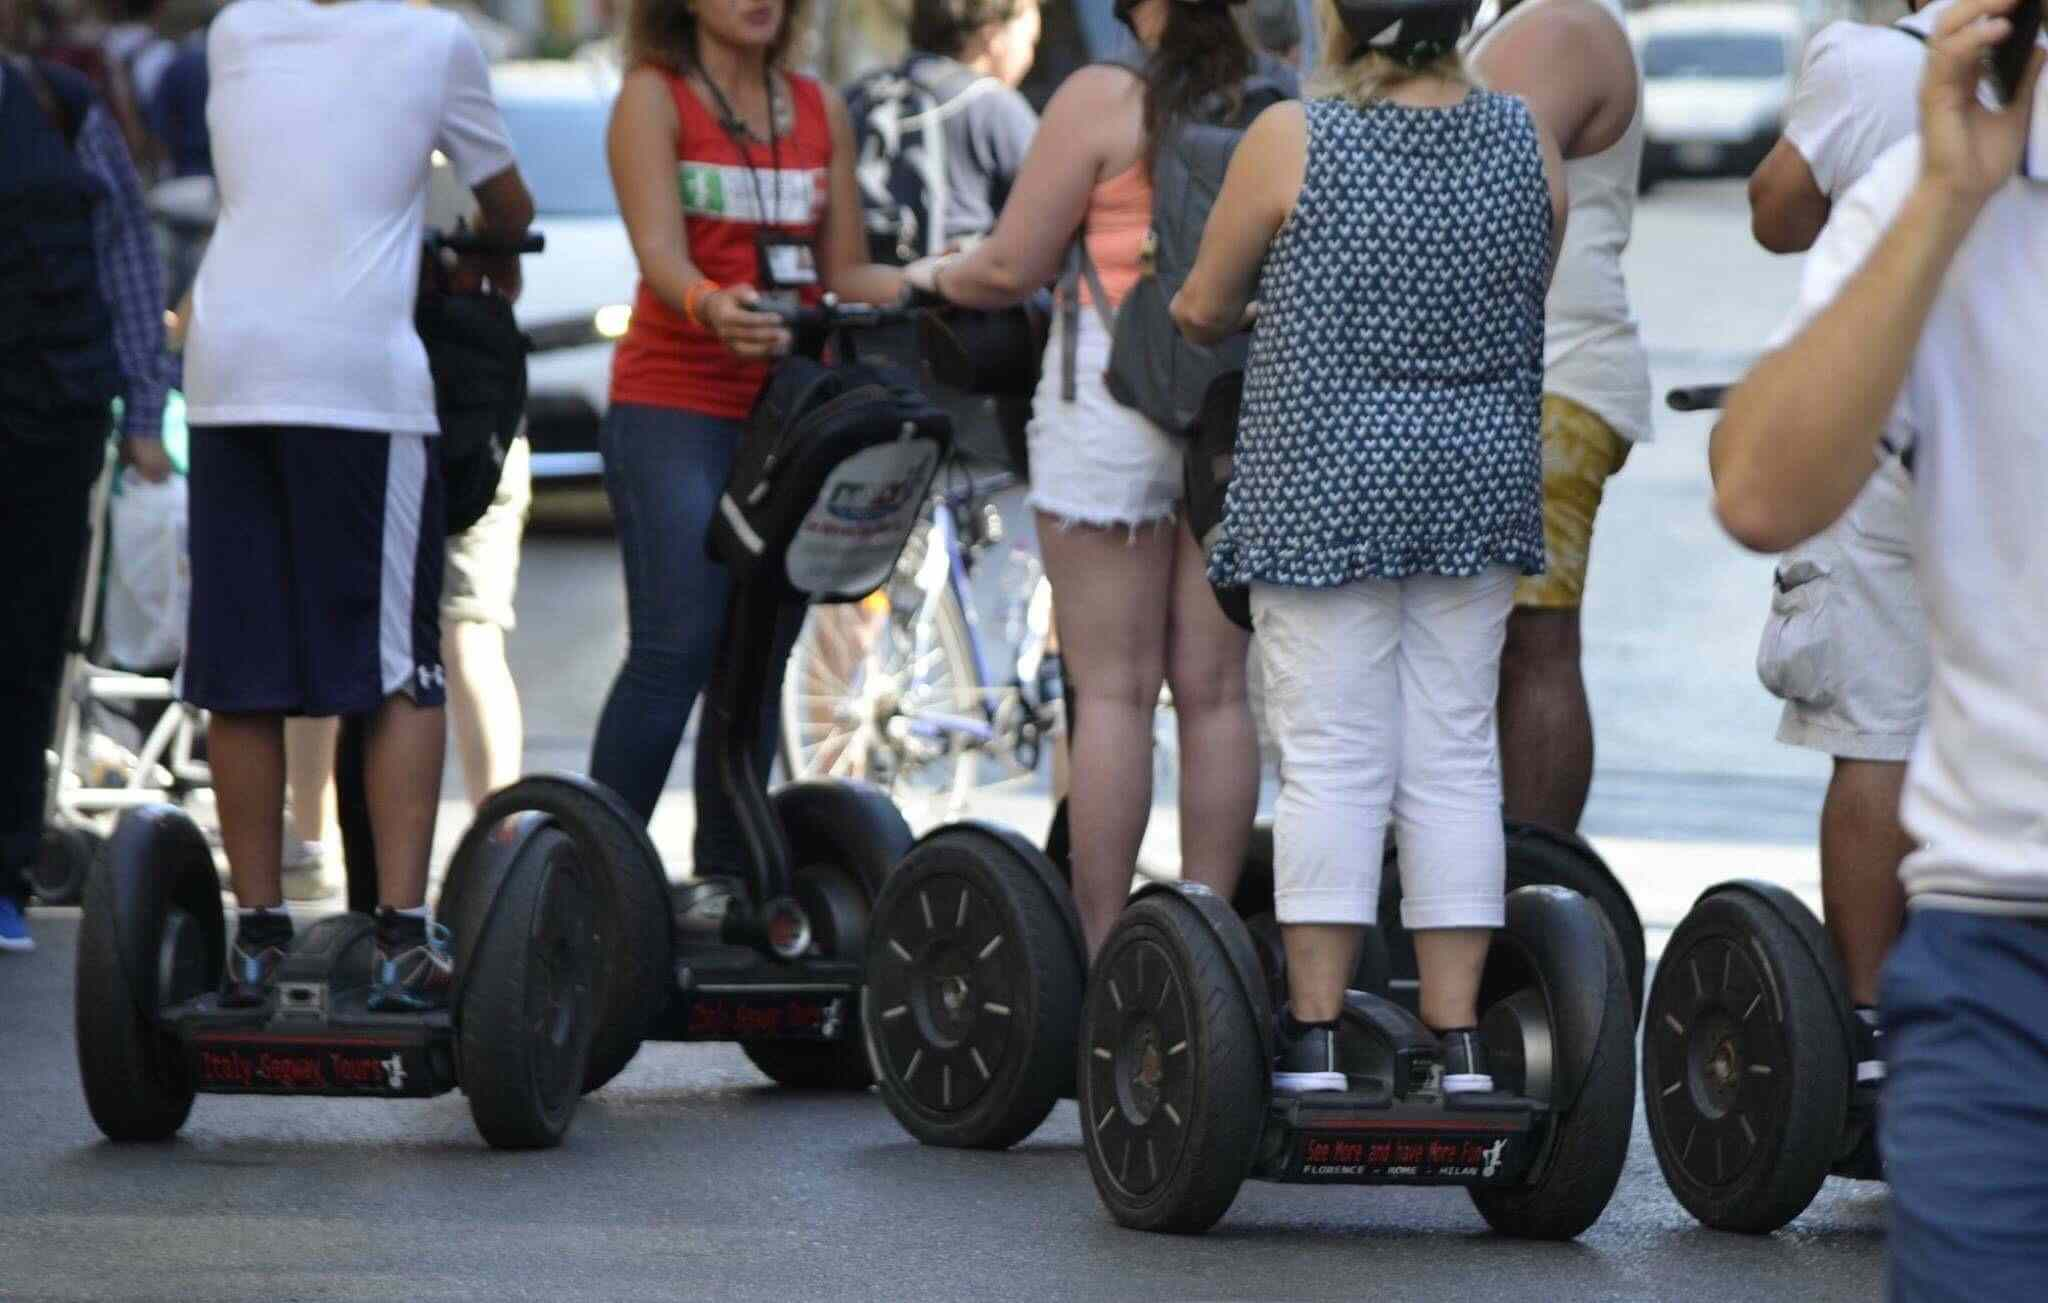 People on Segway scooters